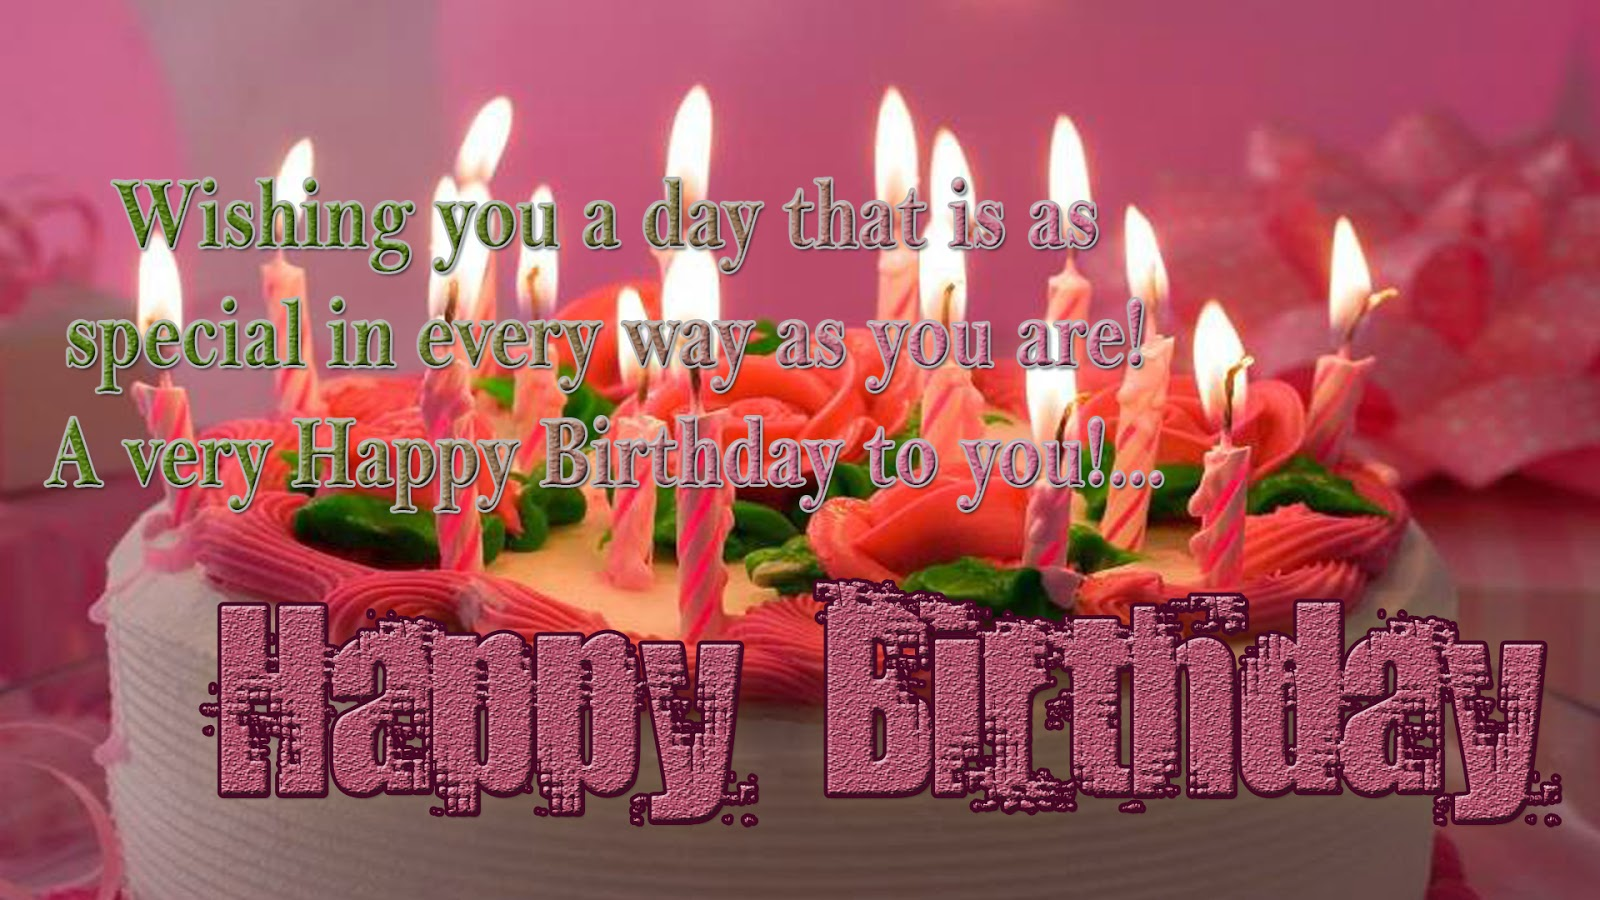 Biblical Quotes For Birthday Wishes Quotesgram Happy Birthday Wishes From Bible